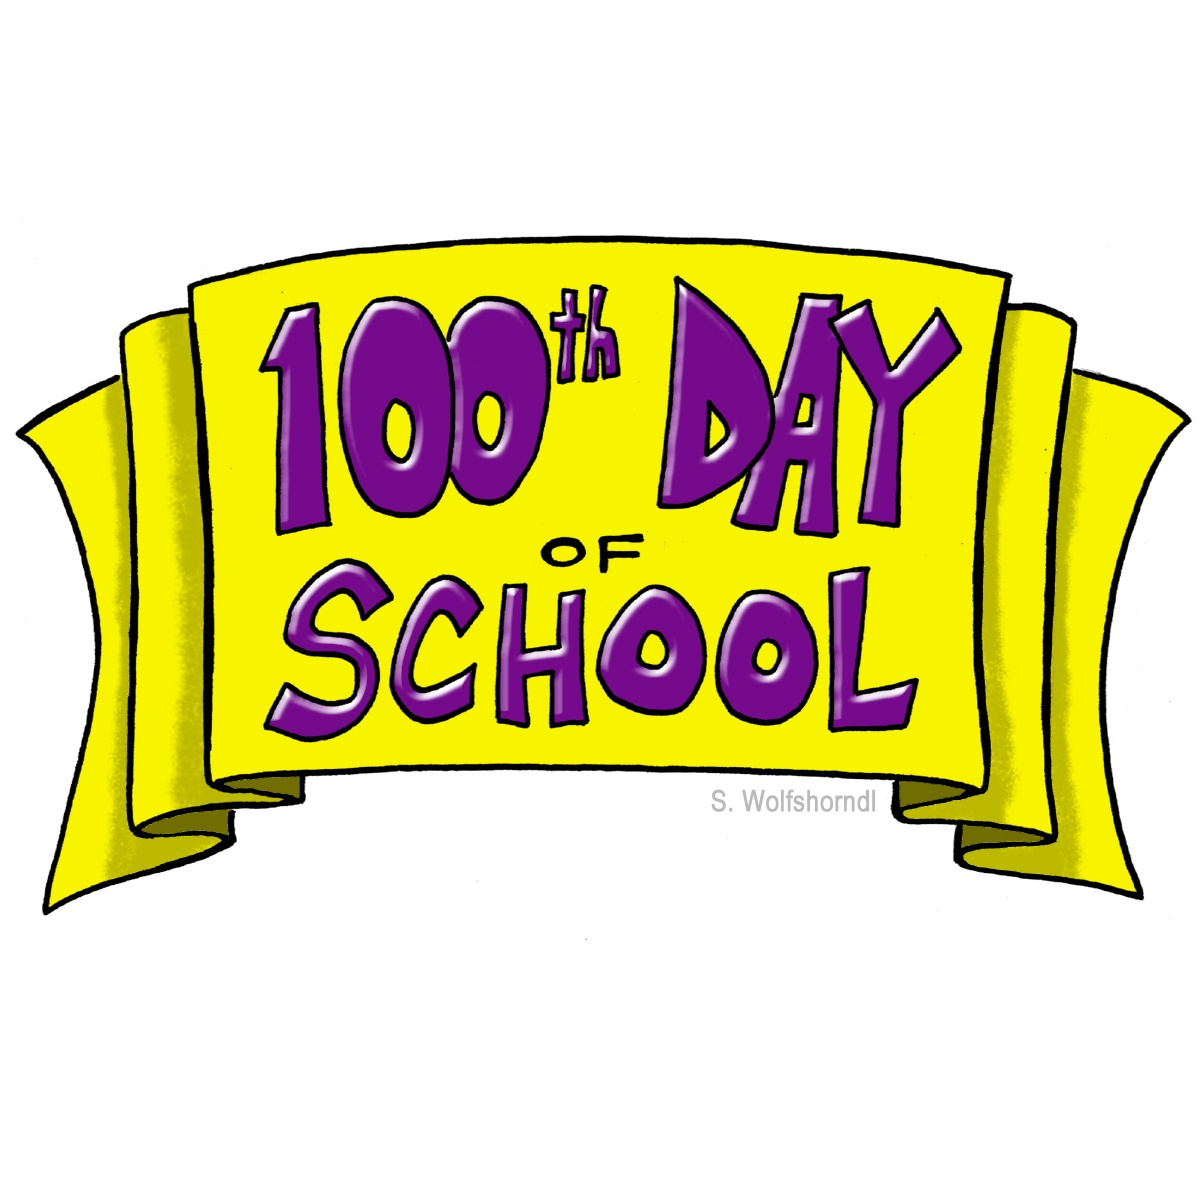 Best 38 100th Day of School Wallpaper on HipWallpaper Back to 1200x1200